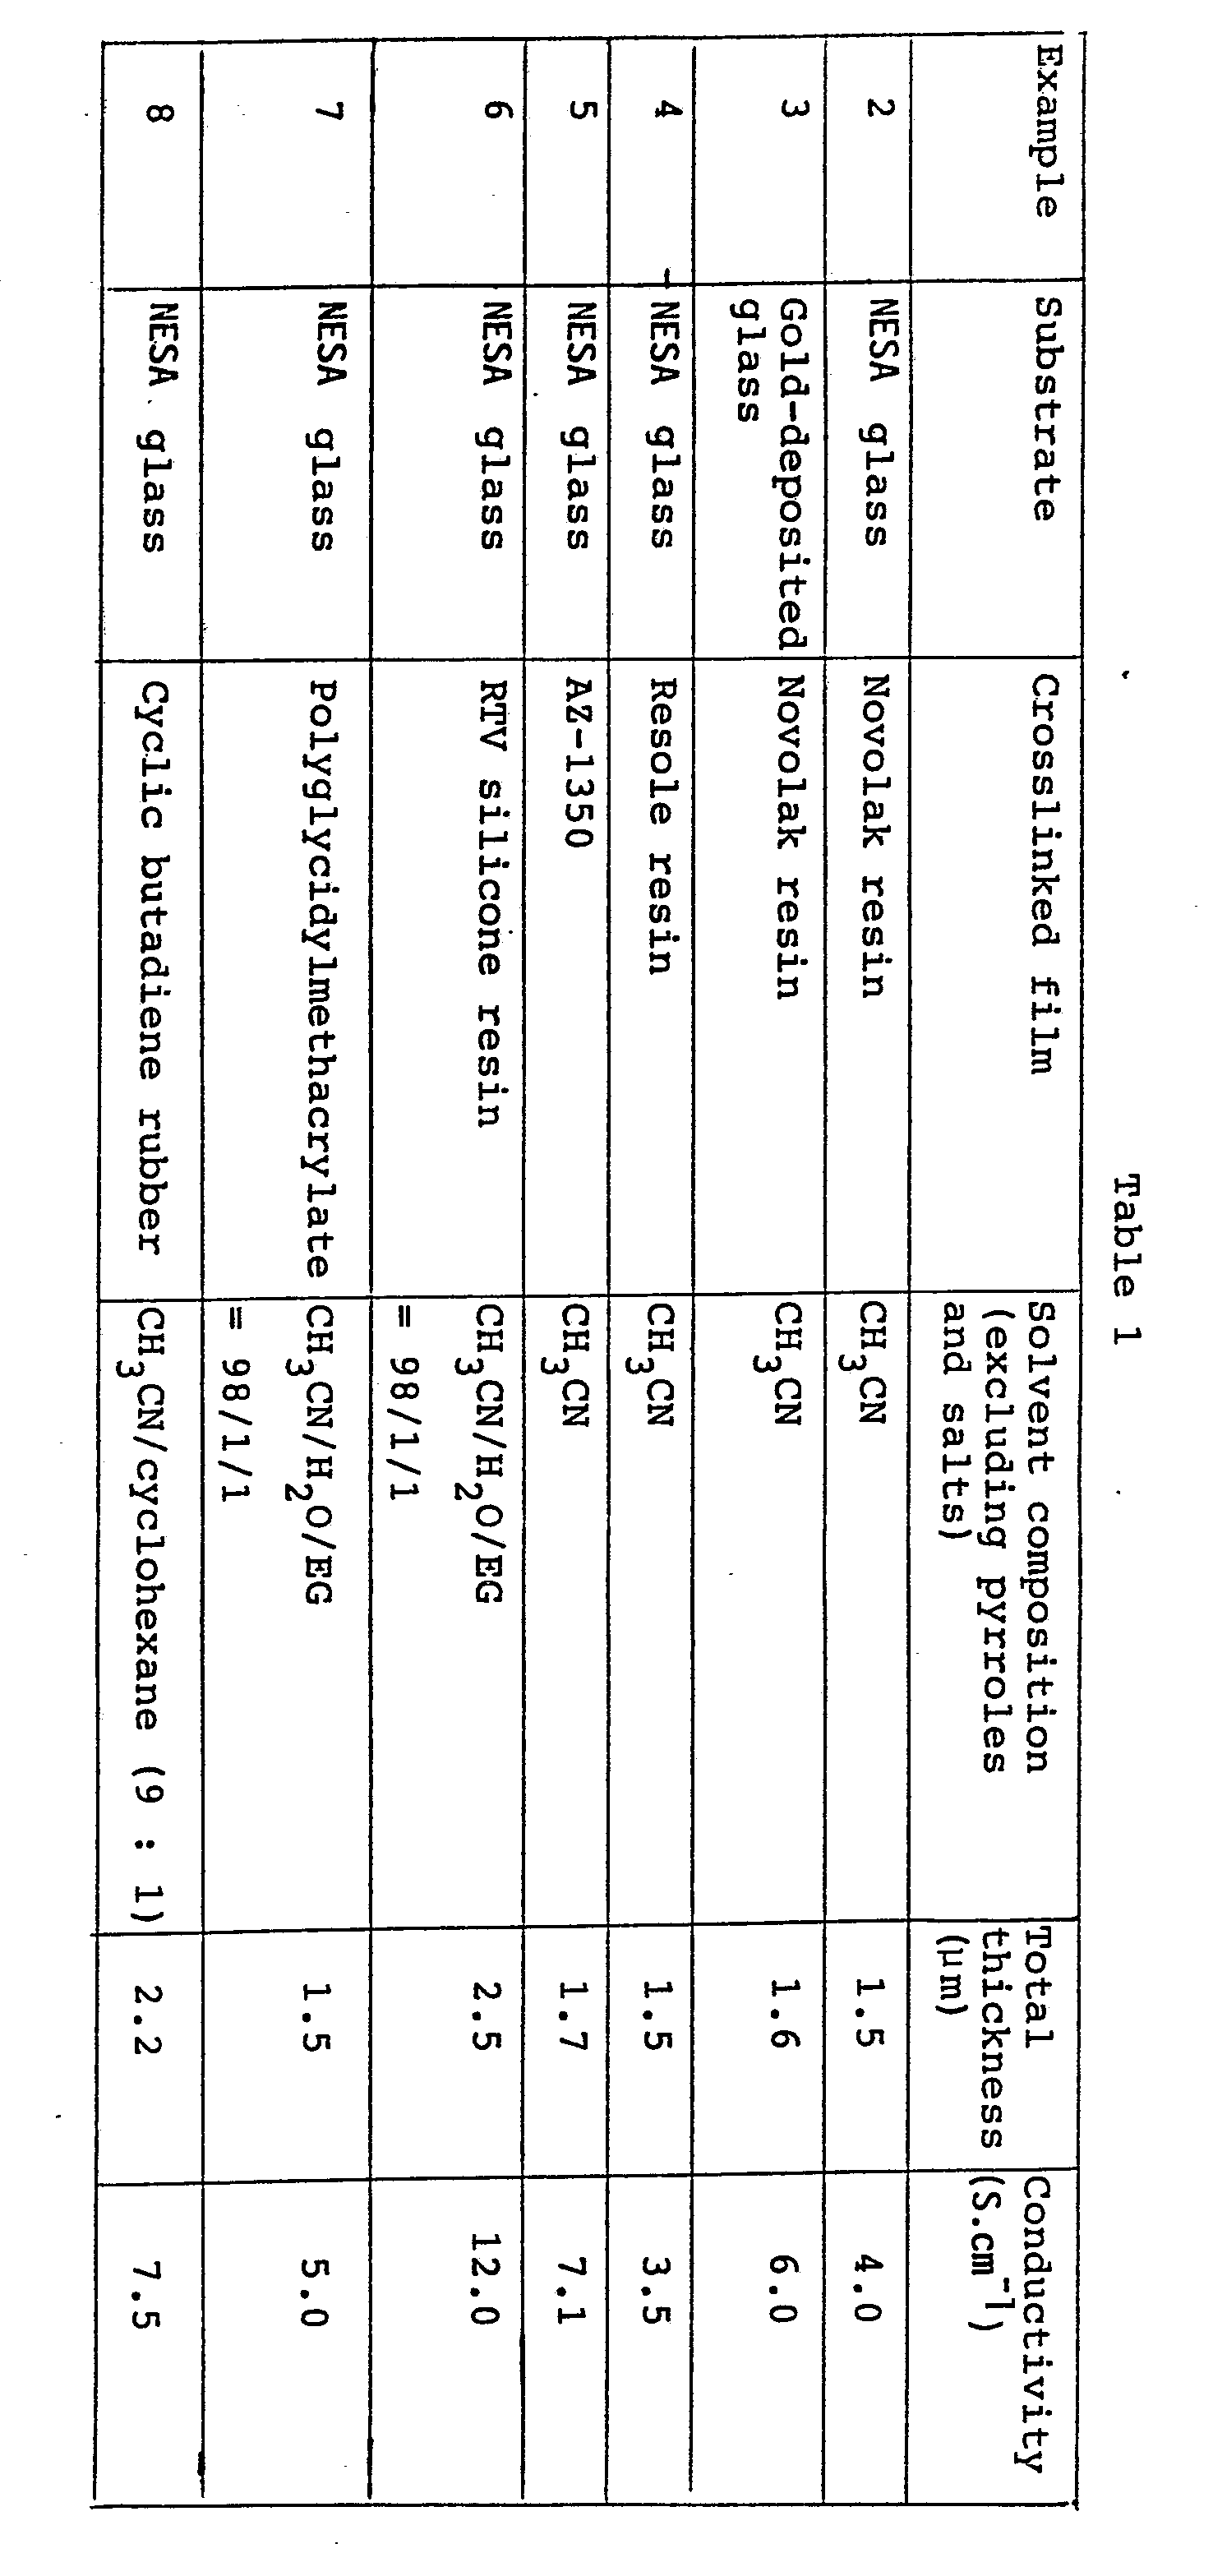 Ep0247366a1 Electrically Conducting Polymer Film And Method Of Printed Circuitry Conductive Technologies Incconductive In Either Case The Had High Electrical Conductivity Reference Symbol Eg Denotes Ethylene Glycol